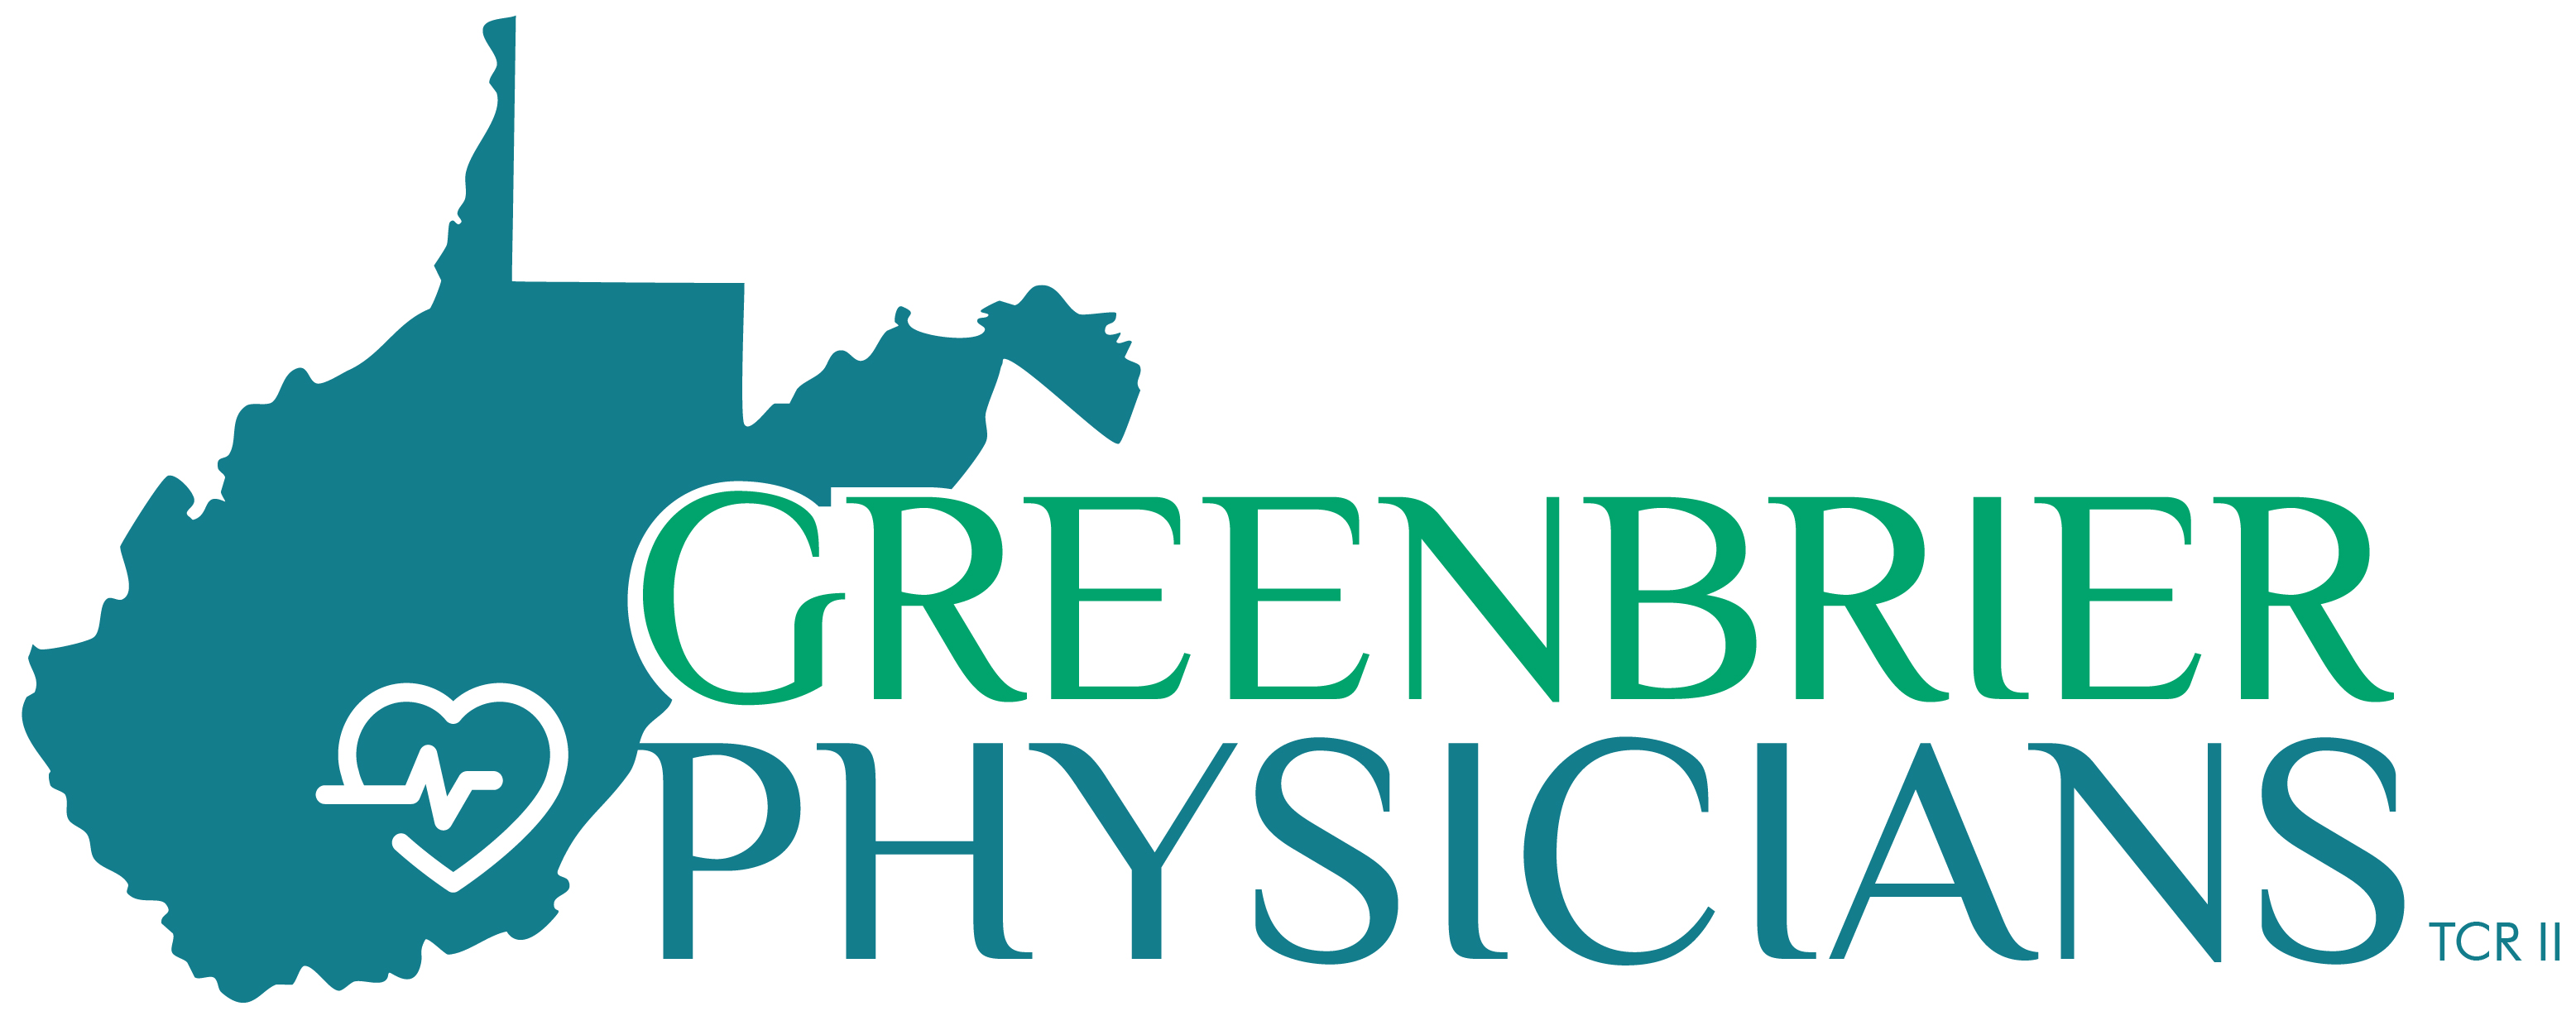 Greenbrier Physicians